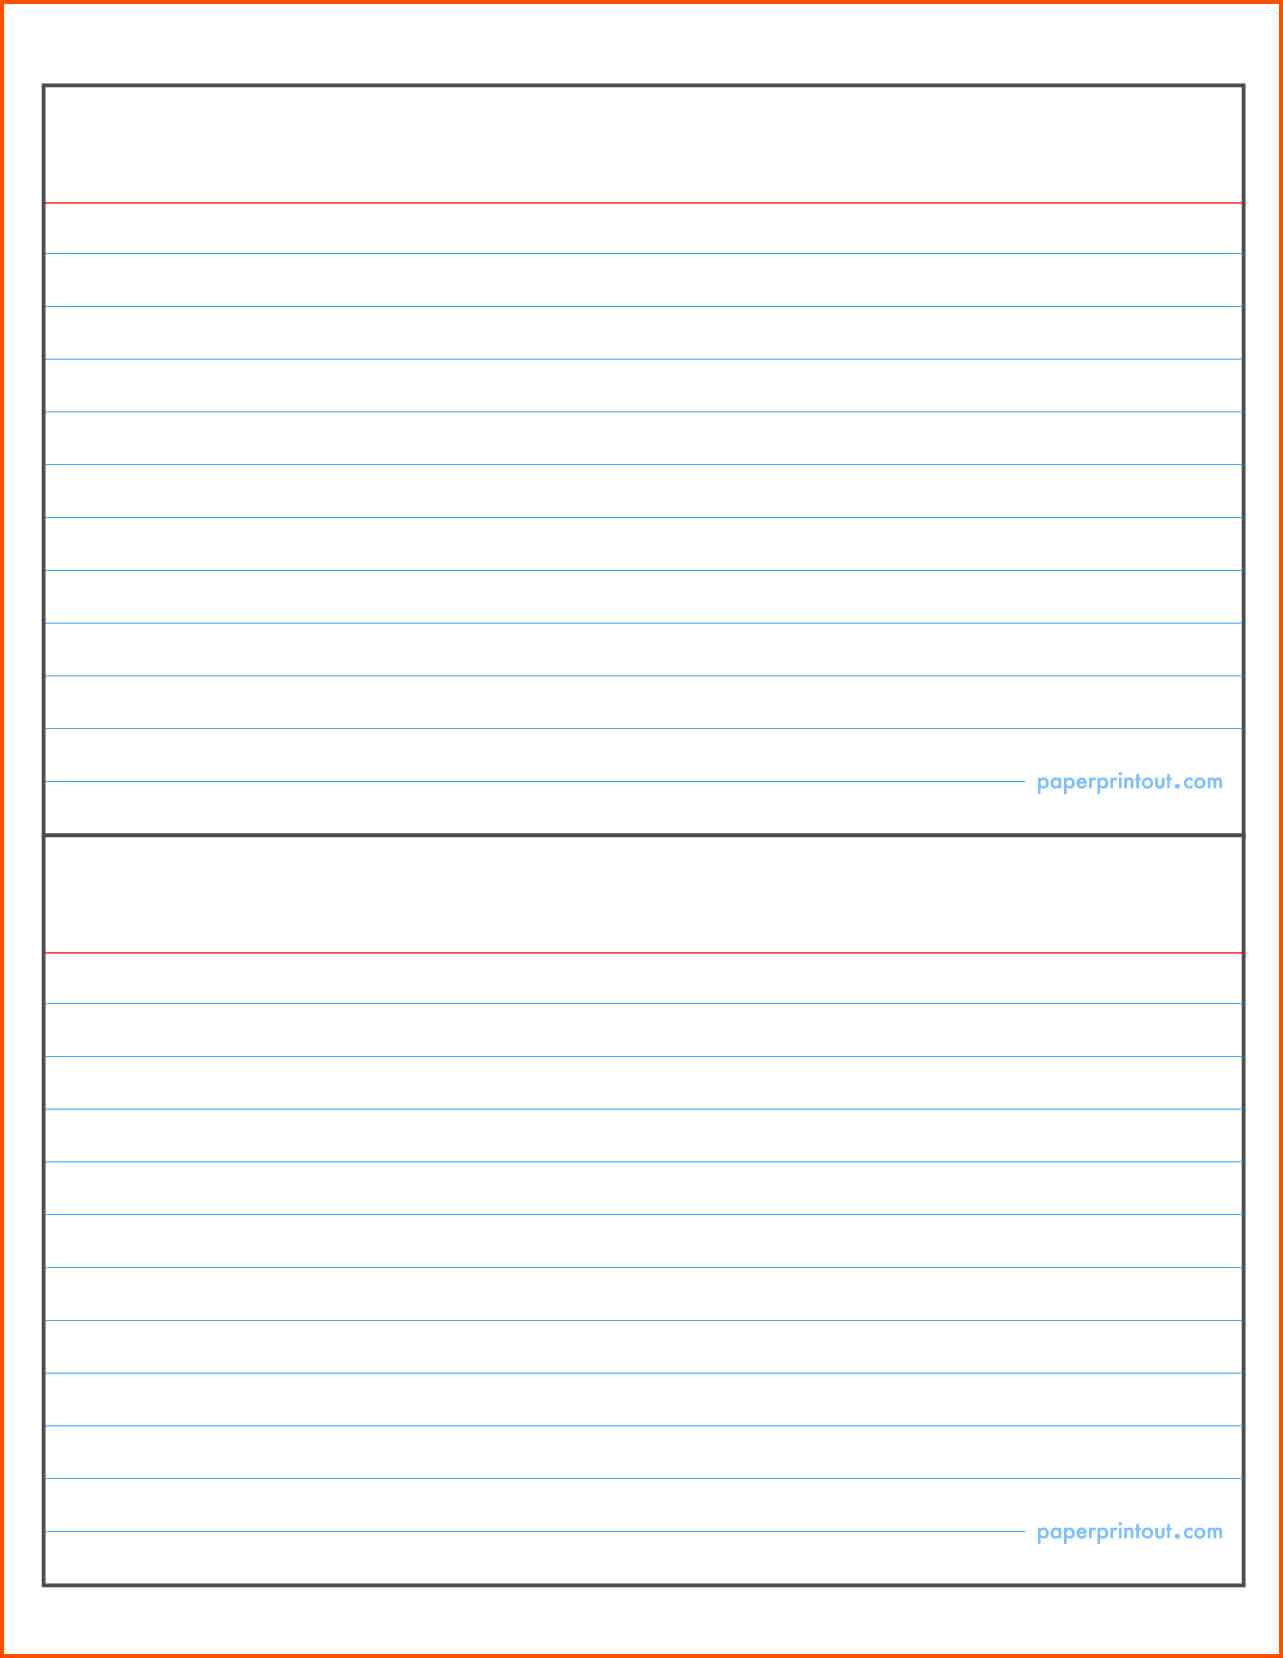 002 Template Ideas Note Card Word Index Cards 127998 Pertaining To Word Template For 3X5 Index Cards